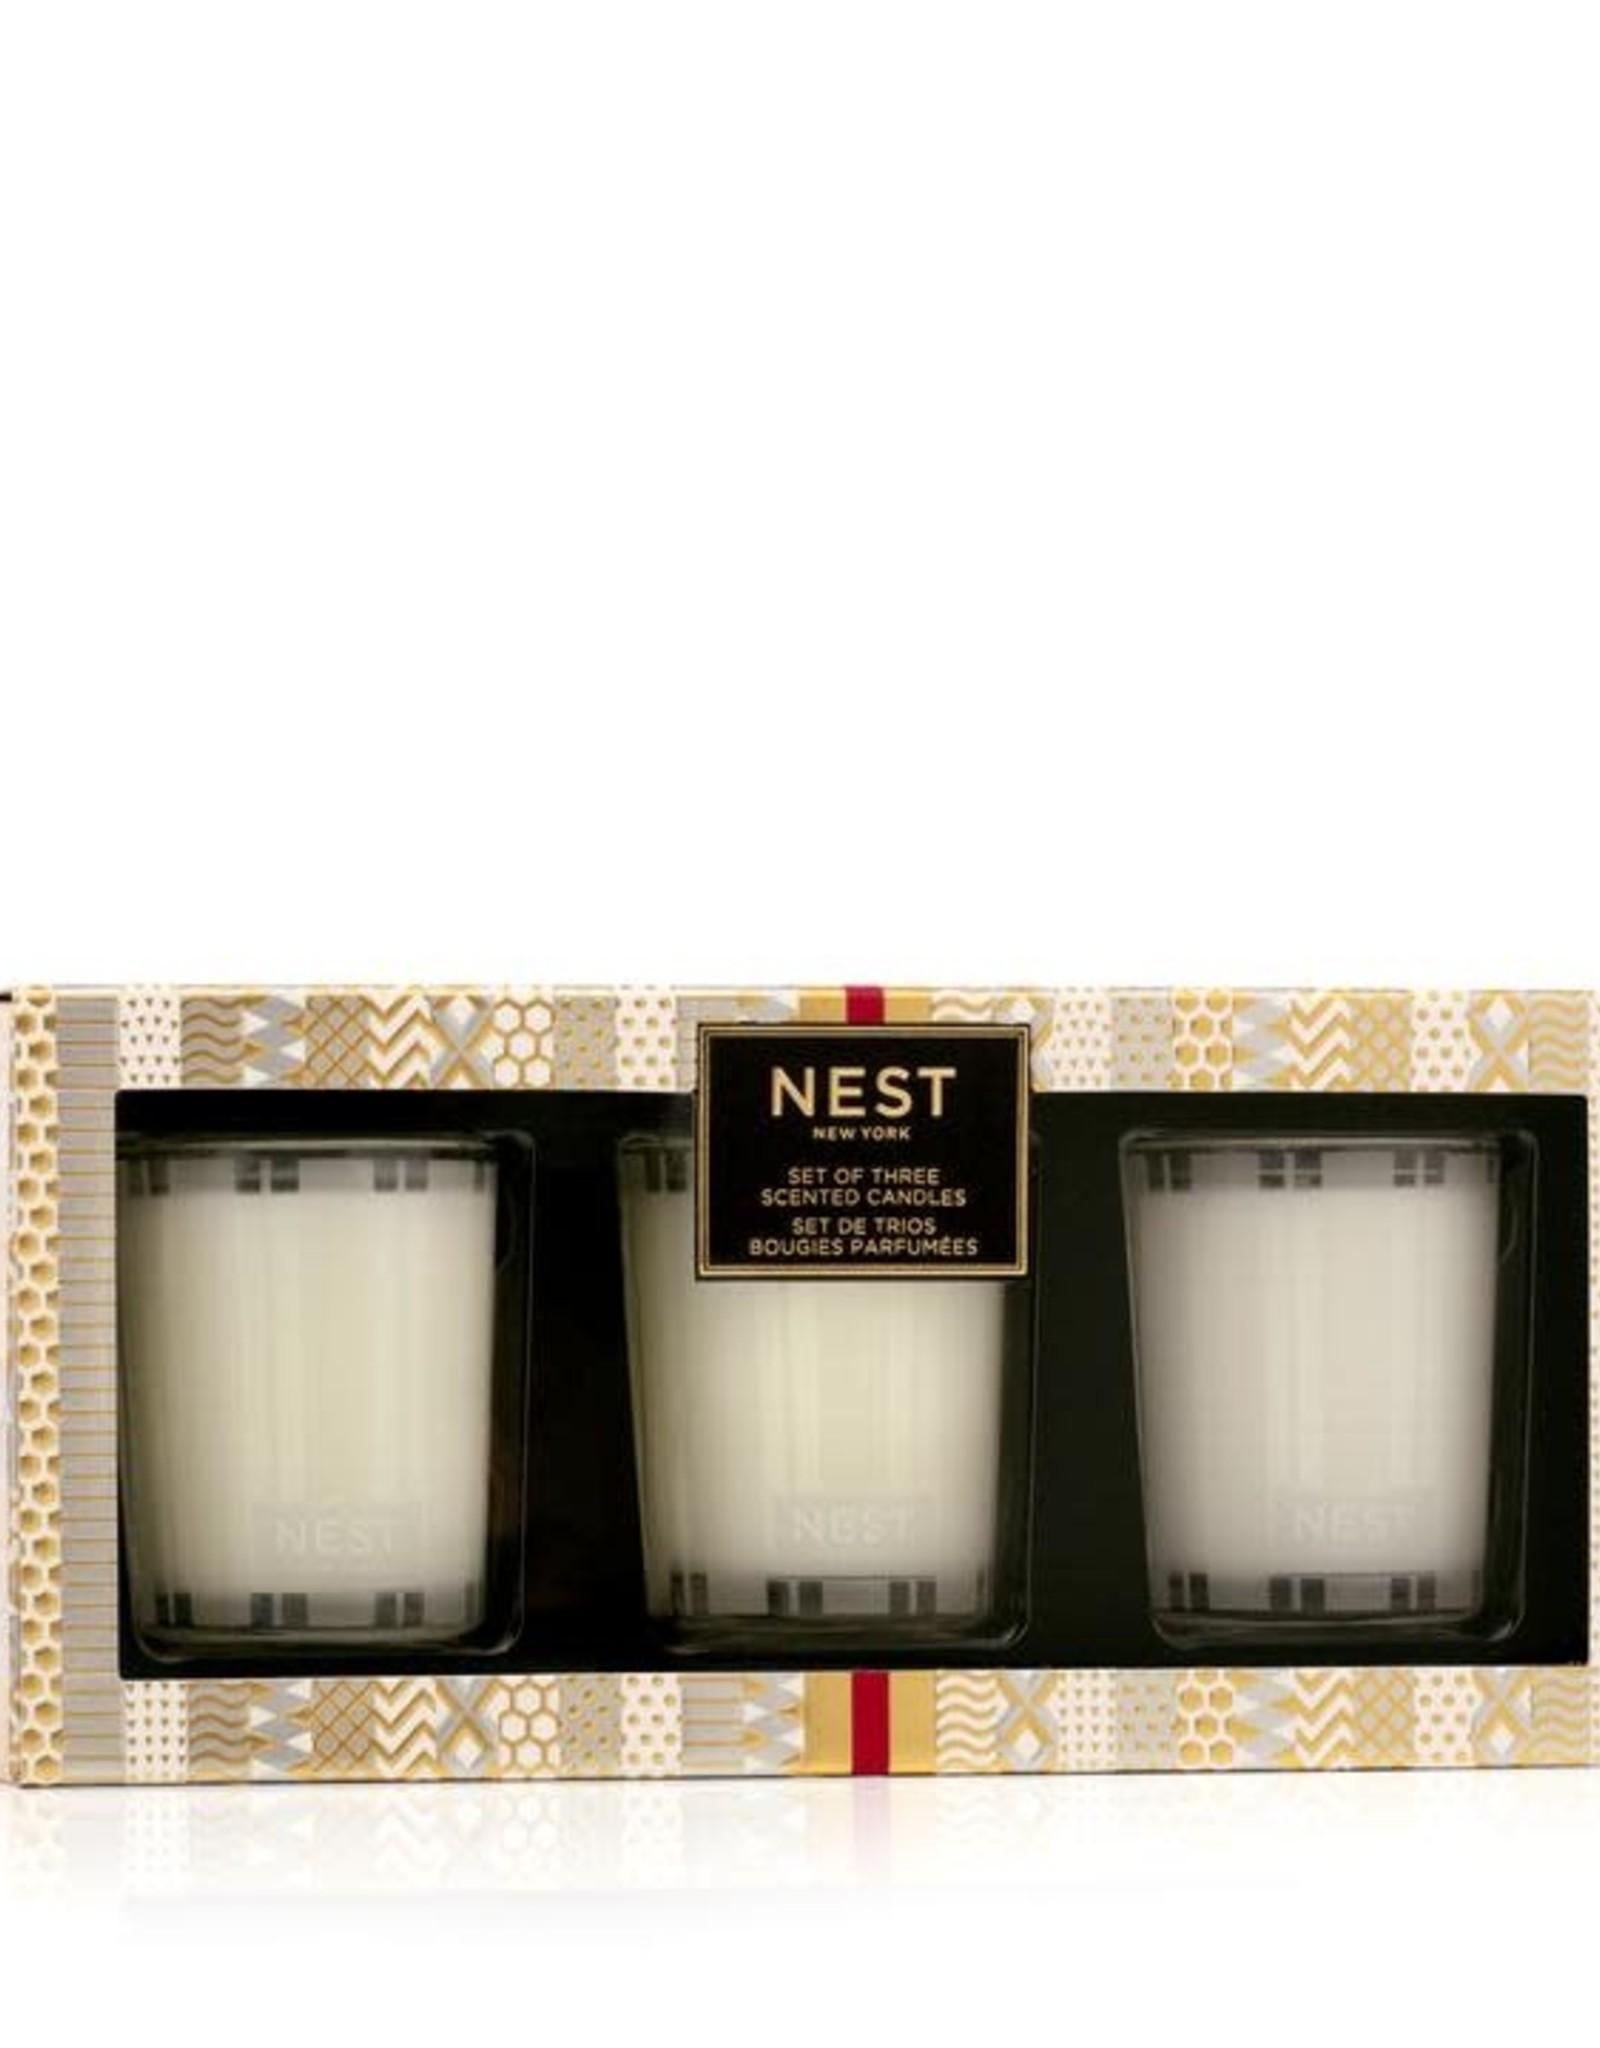 NEST NEW YORK Festive Votive Candle Trio Set